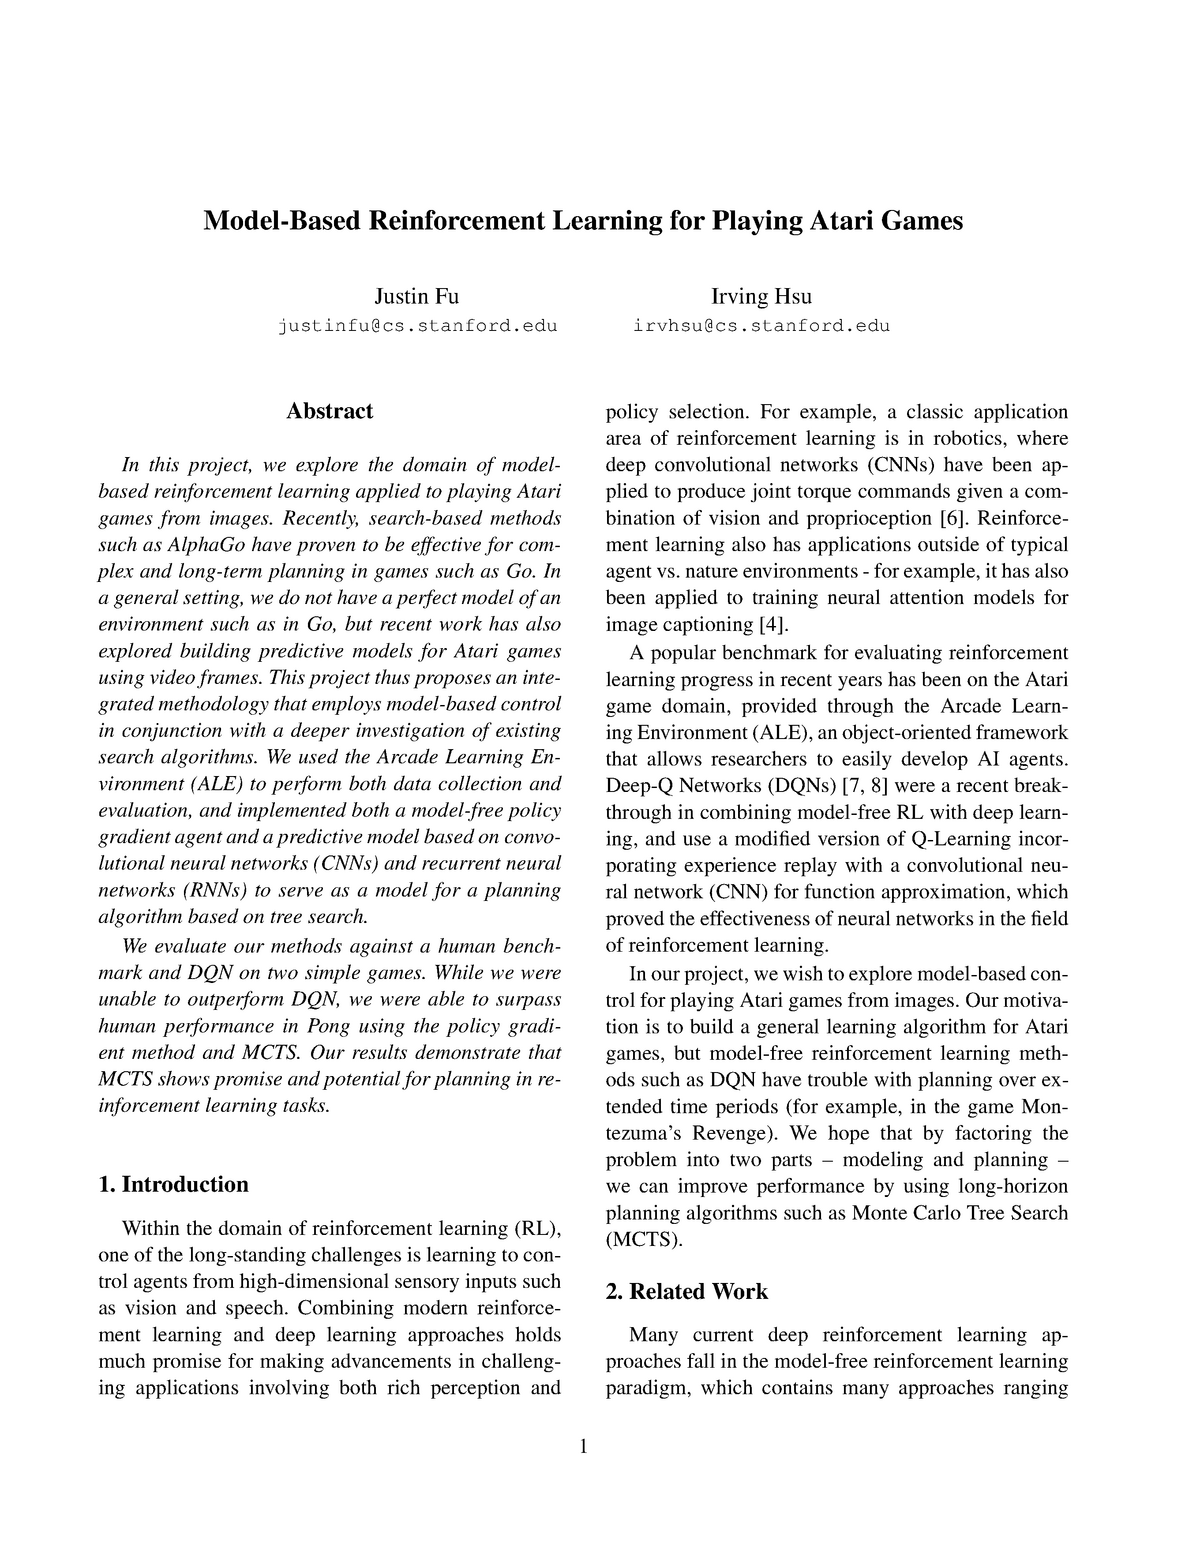 Model-based reinforcement learning for playing atari games